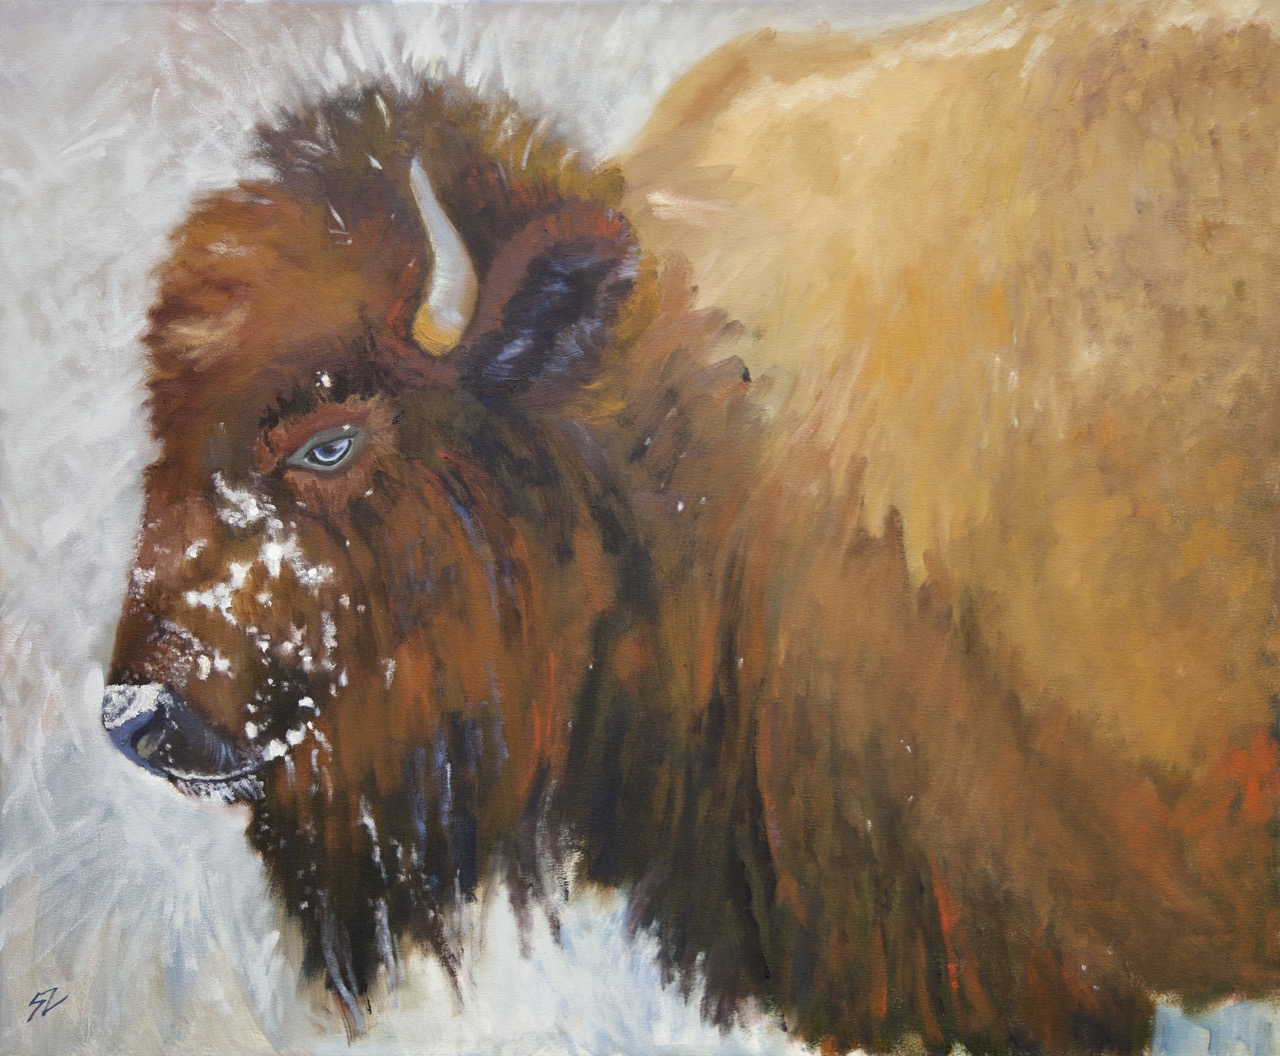 30x36{quote} oil on canvasLamar Valley, Yellowstone National Park© S'zanne ReynoldsPrivate Collection in Tallahasee, Florida